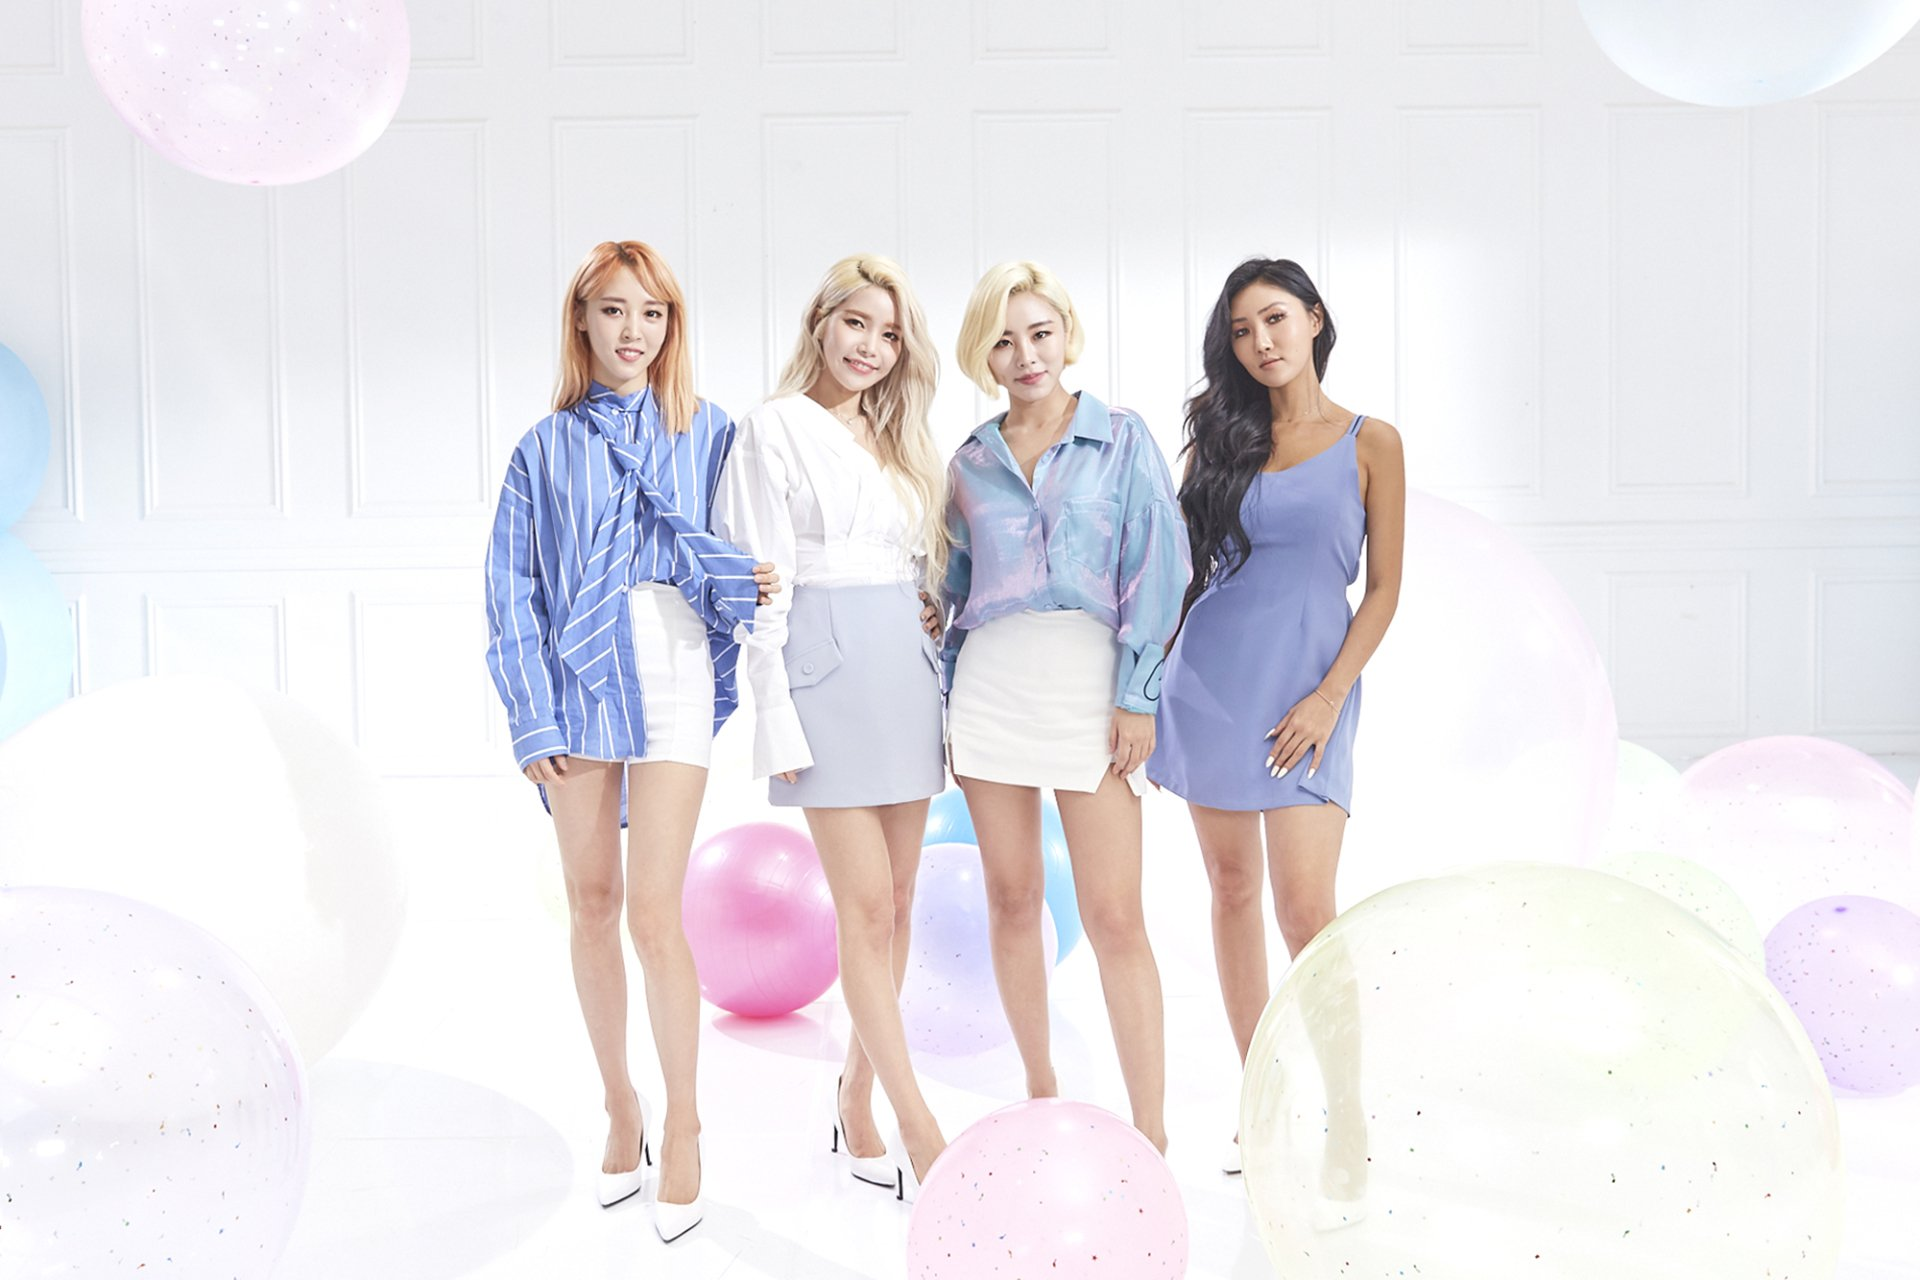 5 Mamamoo Hd Wallpapers Background Images Wallpaper Abyss